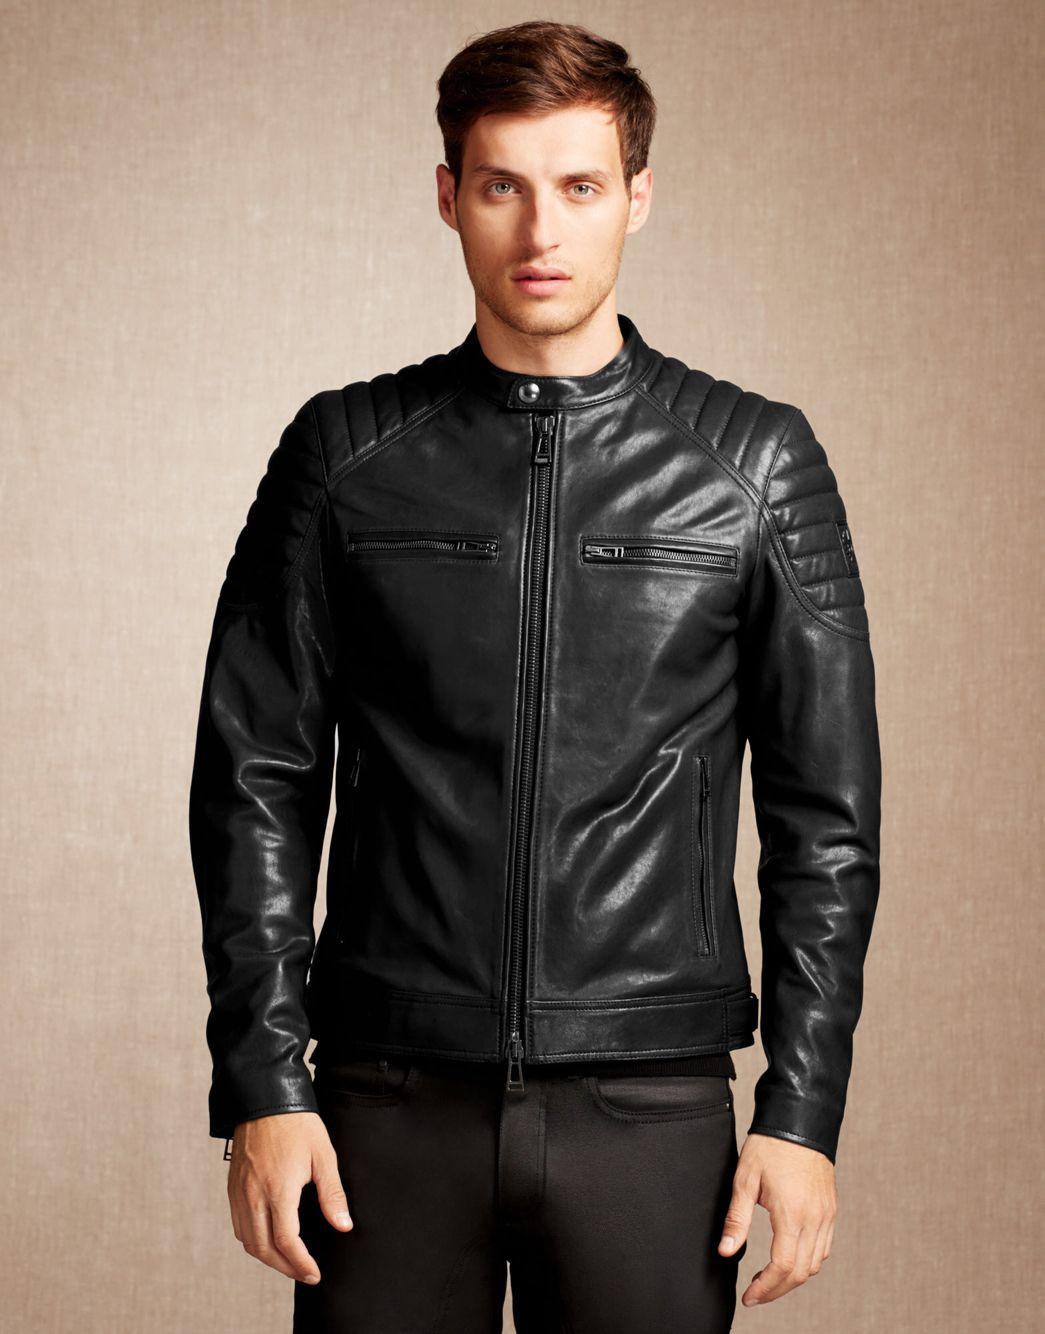 fb845e3a31 Belstaff Stoneham Jacket | Men's Apparel | Leather jacket brands ...